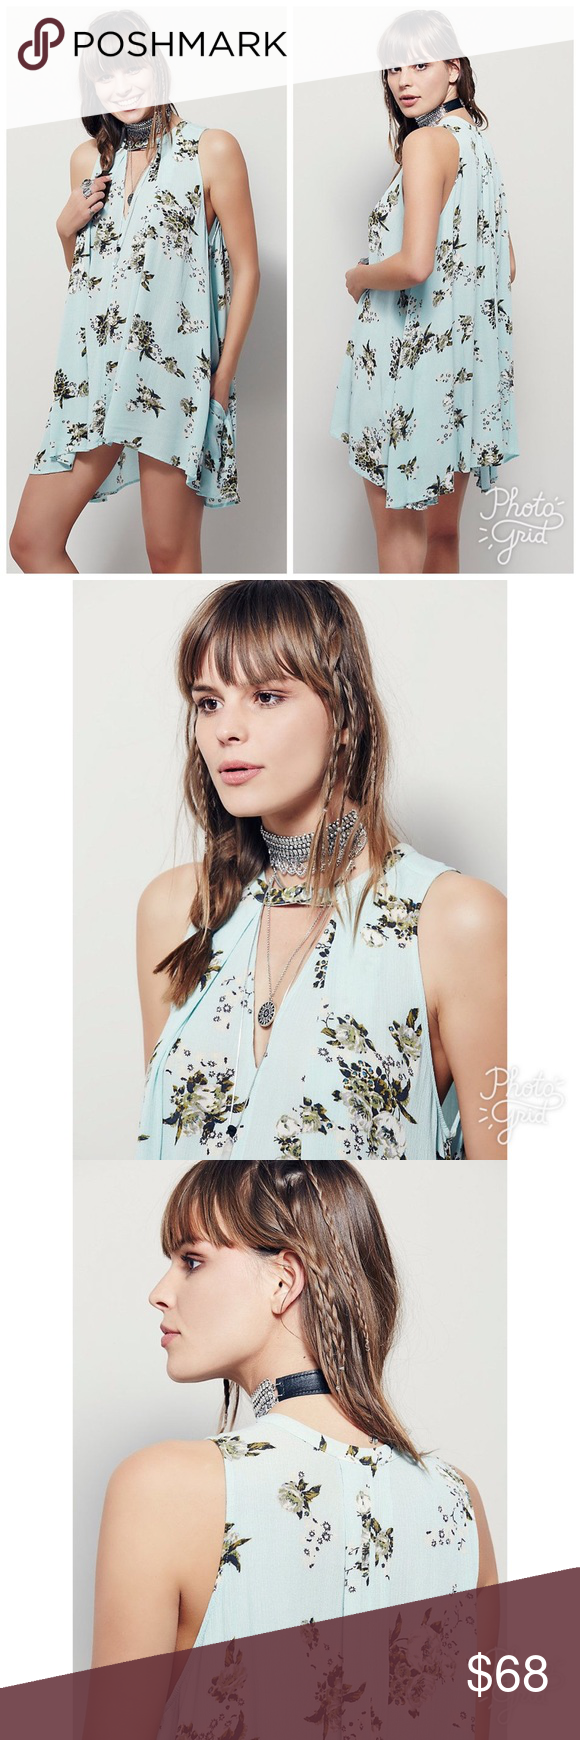 Free People Tree Swing Tunic Dress Free People Retro Tree Swing Sleeveless Tunic Dress in Mint green. Floral printed swing tunic with keyhole opening and button at neckline. Swingy trapeze fit. Size Medium. Never worn. Price firm. NO trades. Free People Dresses